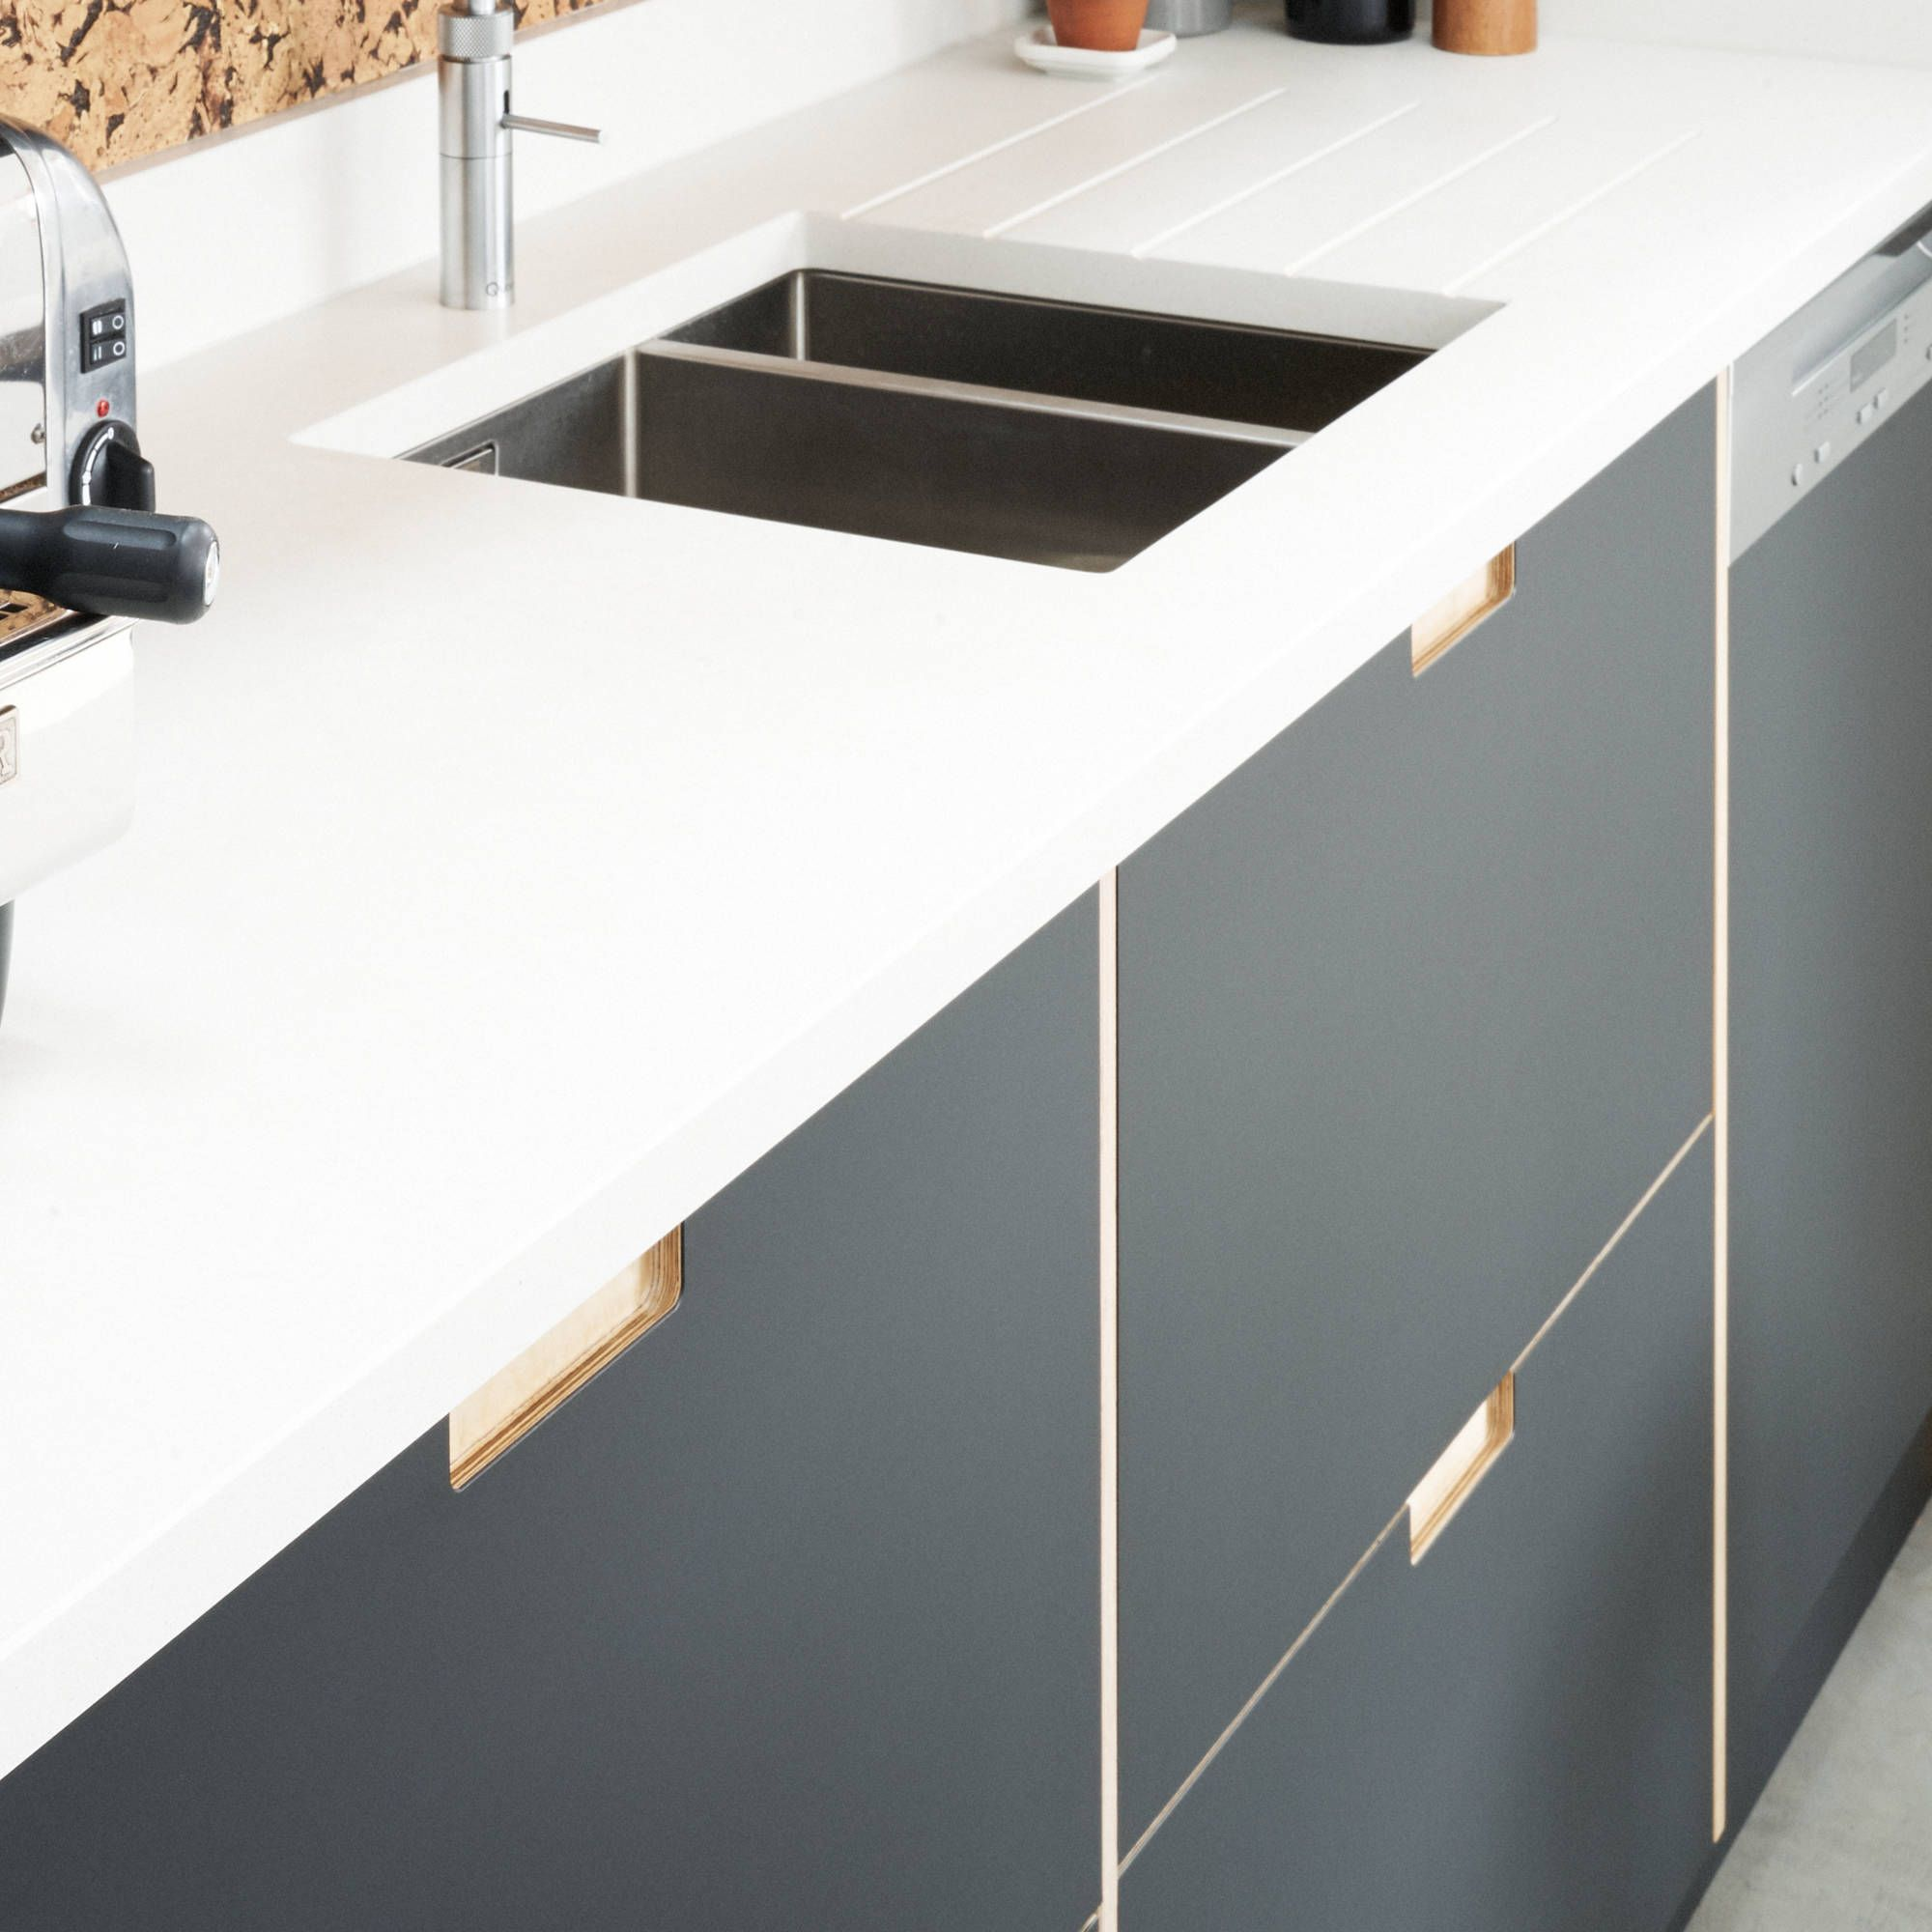 Fenix Faced Plywood Kitchen Door Fronts With Birch Plywood Semi Recessed Handles By Plykea Plywood Kitchen Ikea Kitchen Online Kitchen Cabinets